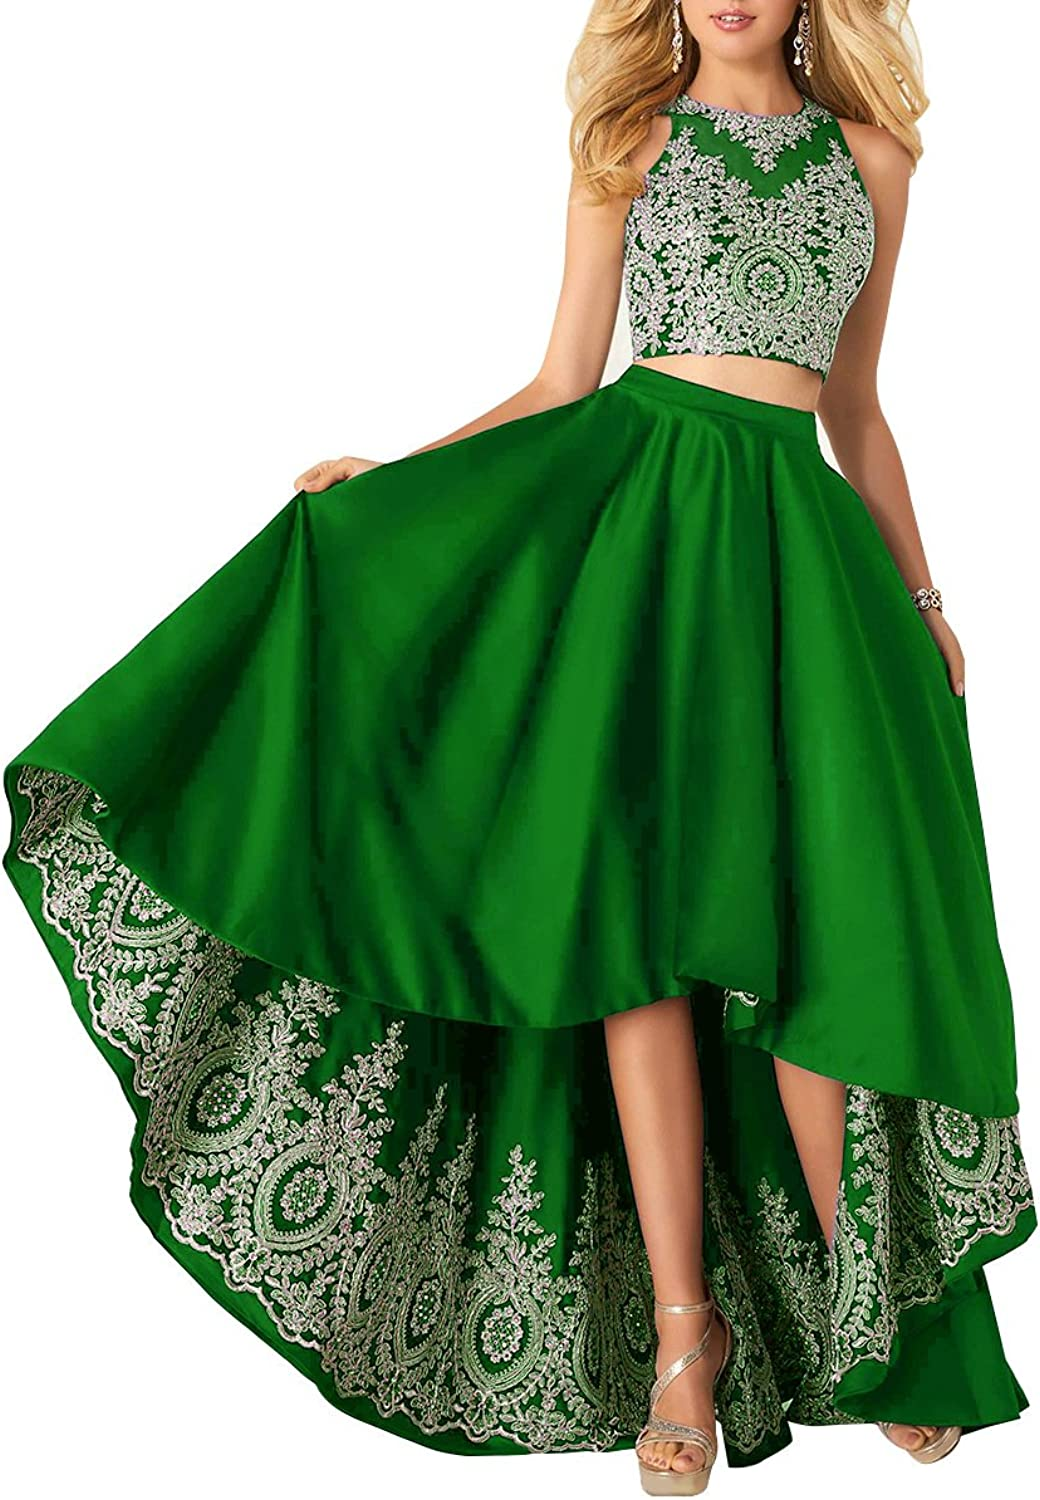 Staypretty Homecoming Dresses Satin Lace Halter Aline Formal Short Prom Gown with Pockets